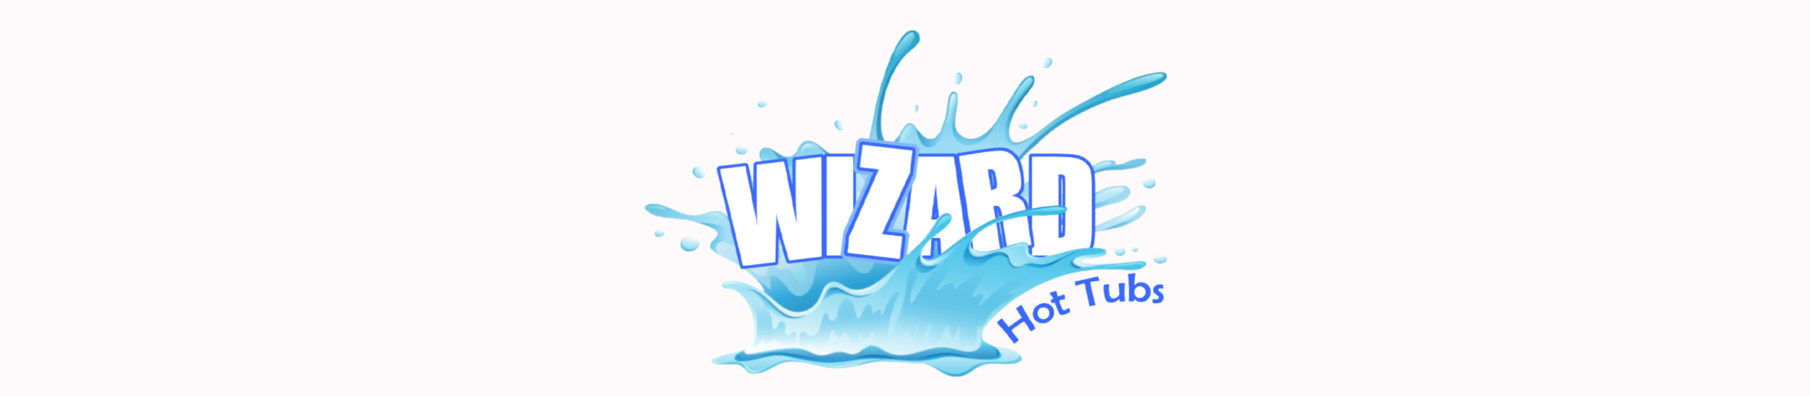 Wizard Hot Tubs